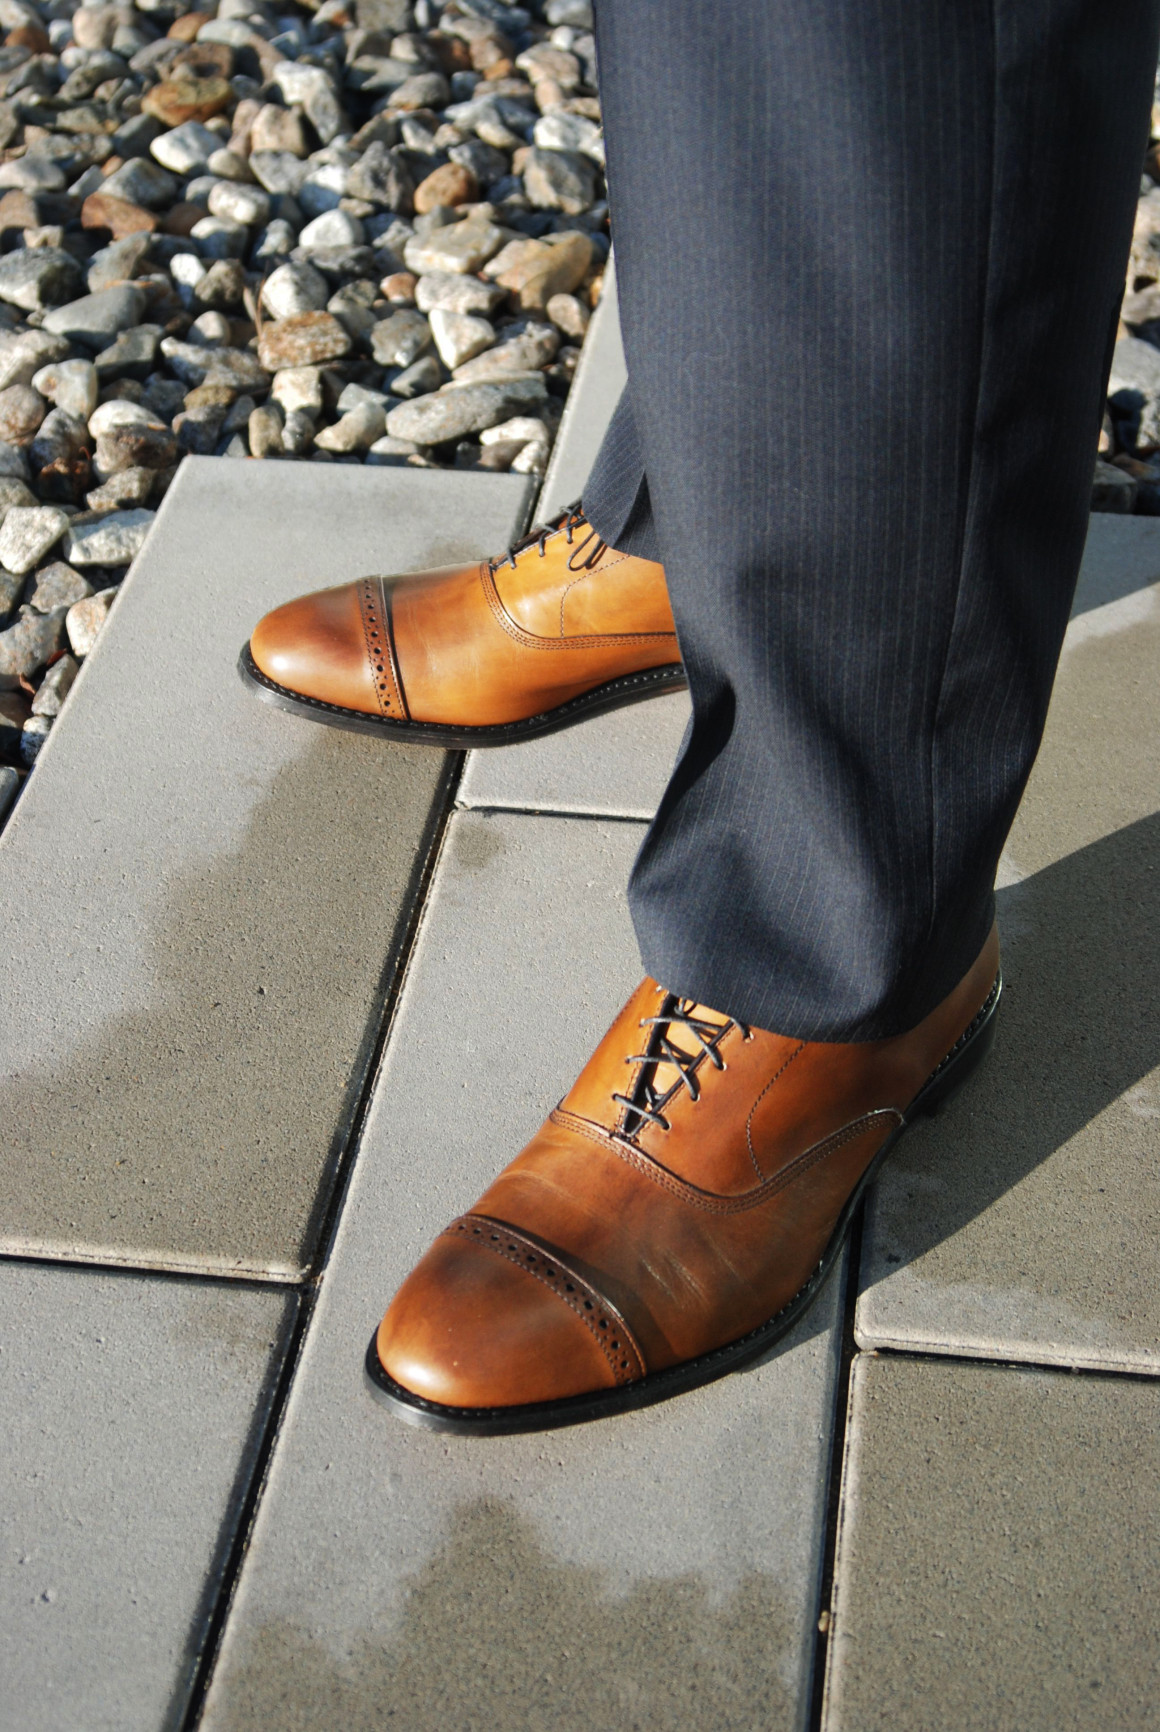 The Height Of Style The Next To Custom Dress Shoe An